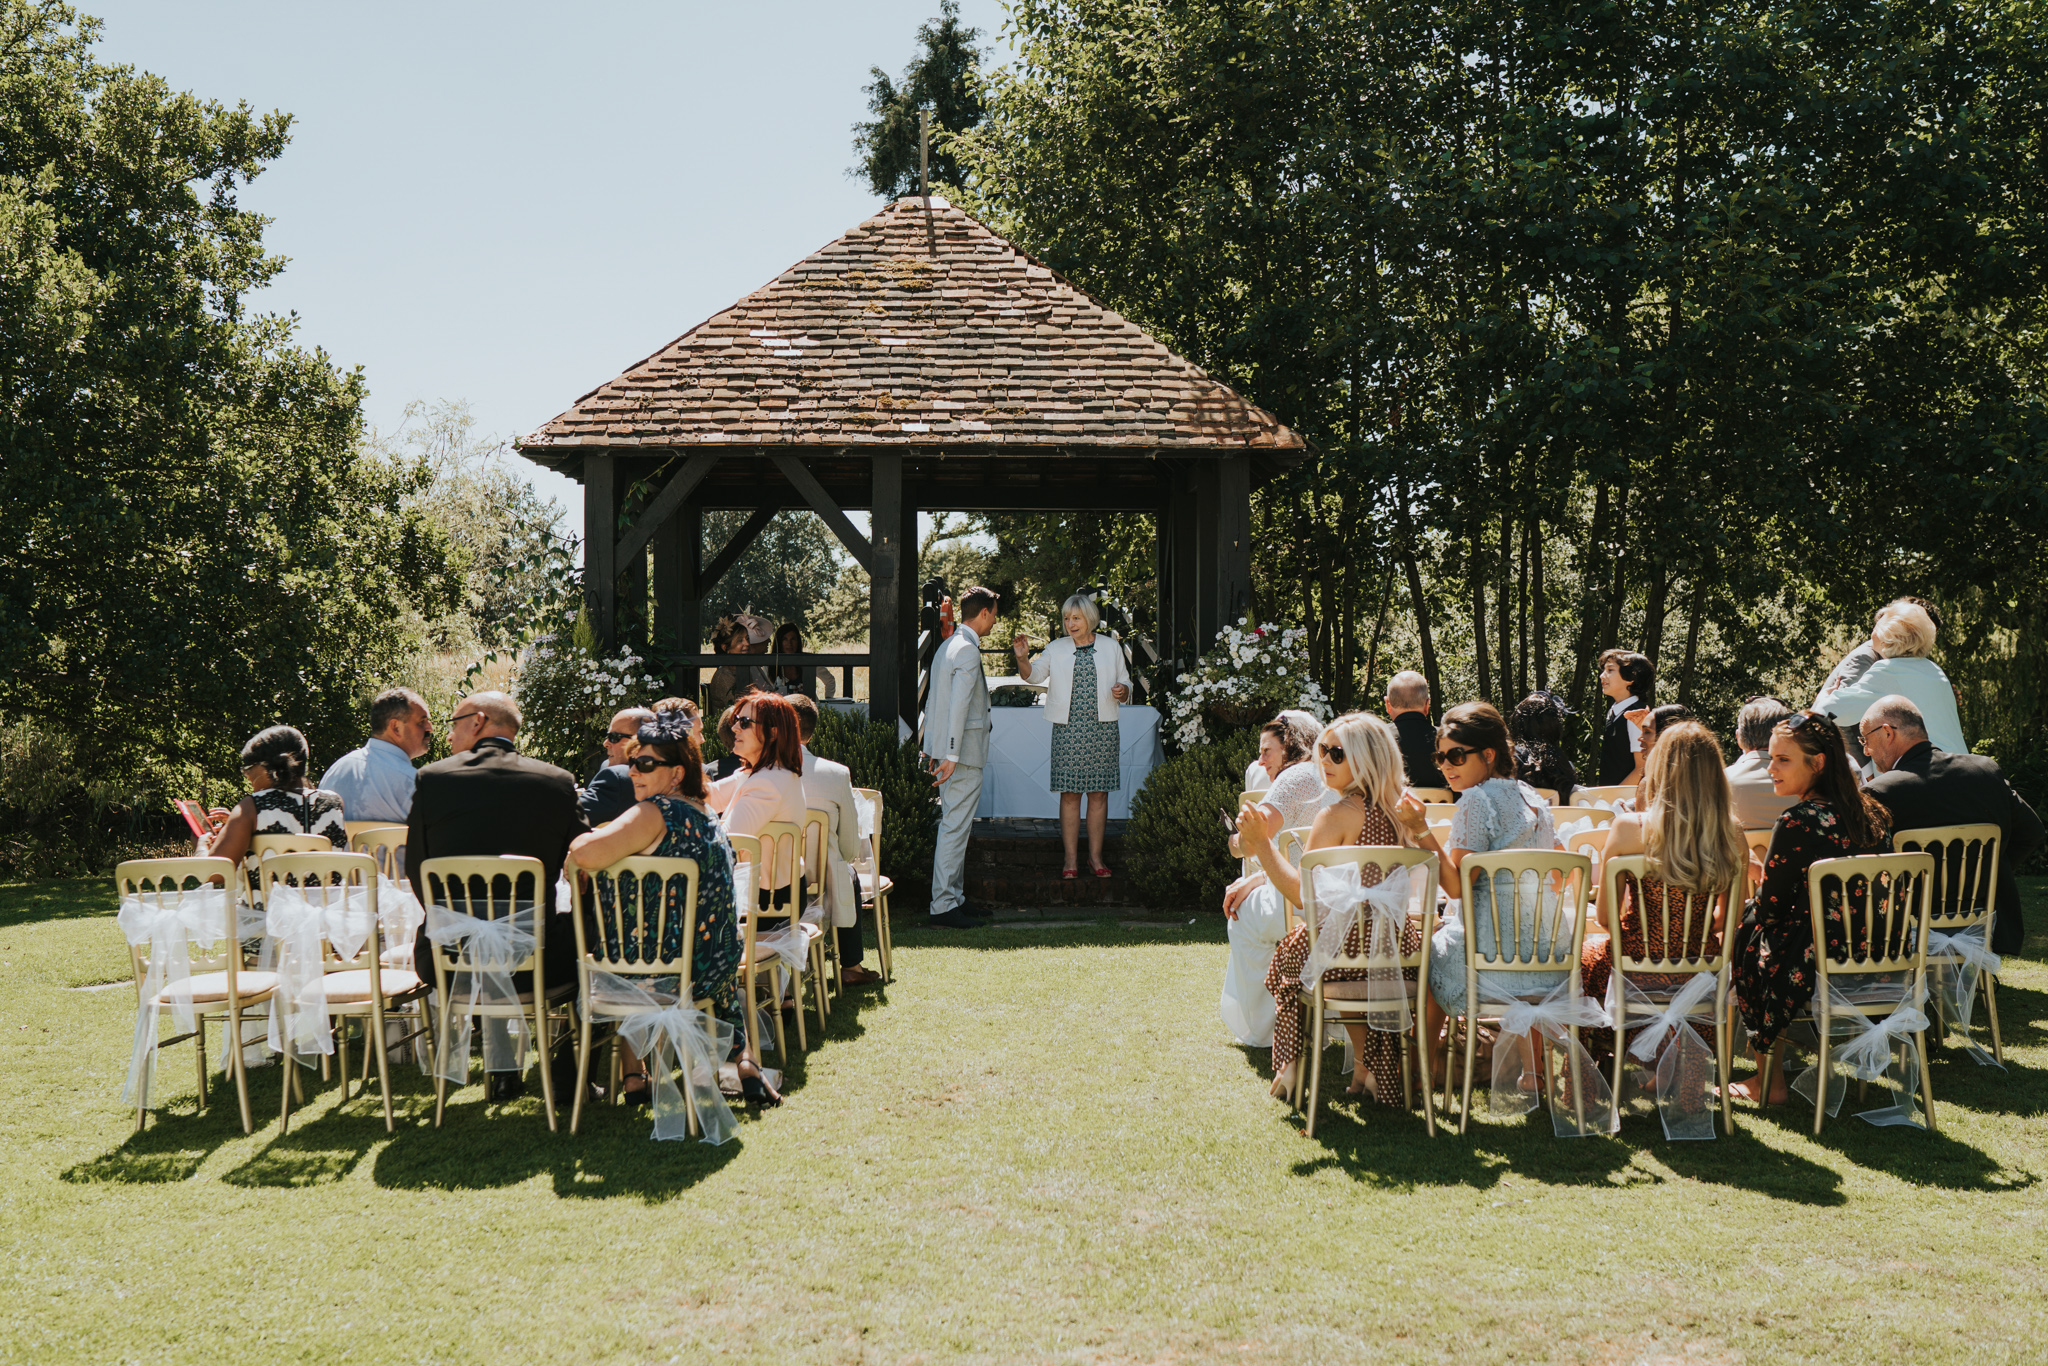 Sophie-Christian-Prested-Hall-DIY-Boho-Outdoor-Wedding-Grace-Elizabeth-Alternative-Wedding-Photographer-Colchester-Essex (25 of 113).jpg